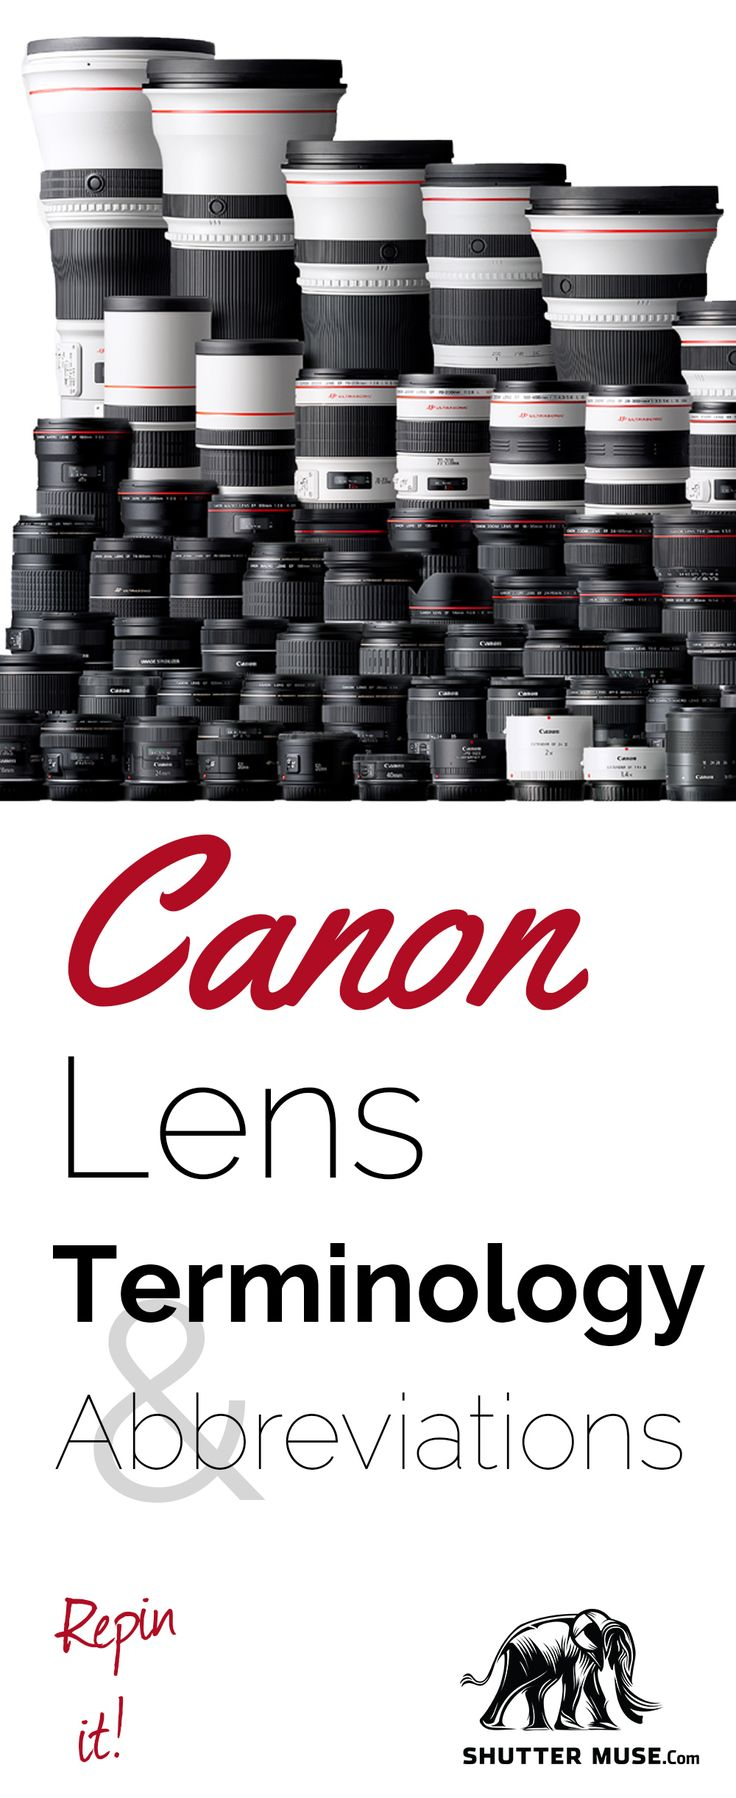 Check out this great guide to Canon lens terminology and abbreviations.